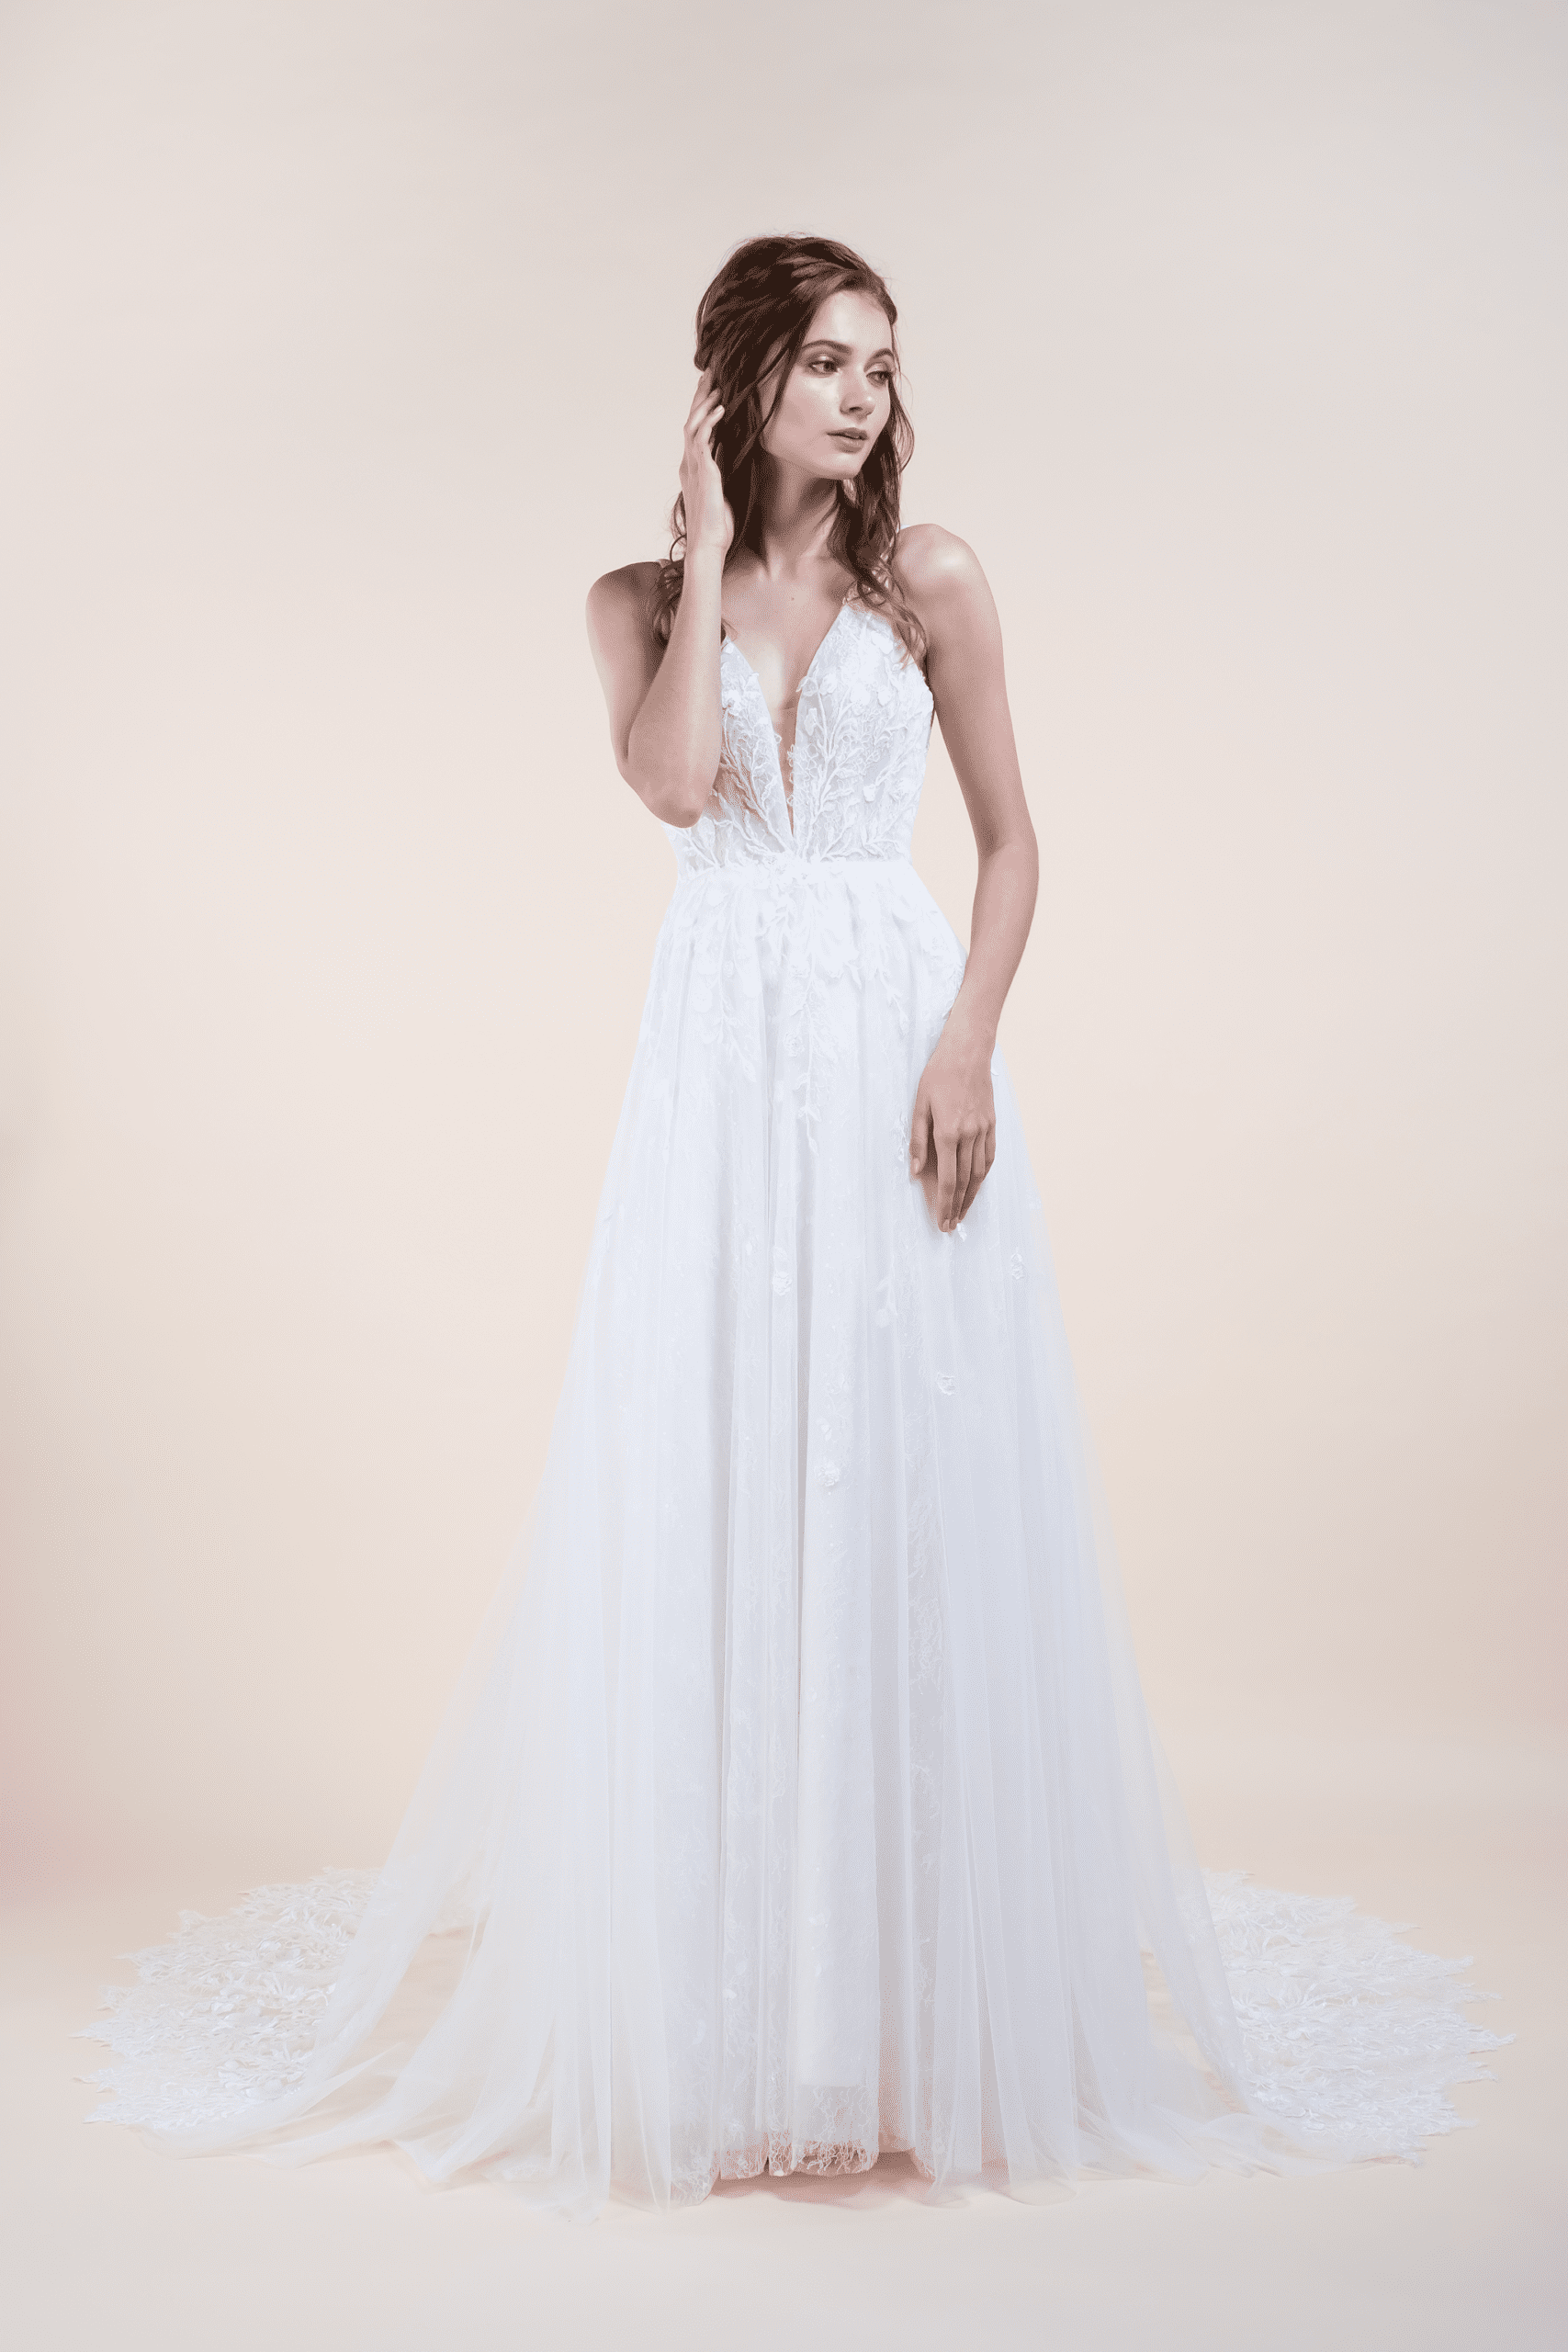 Ella-Local Designer Gown